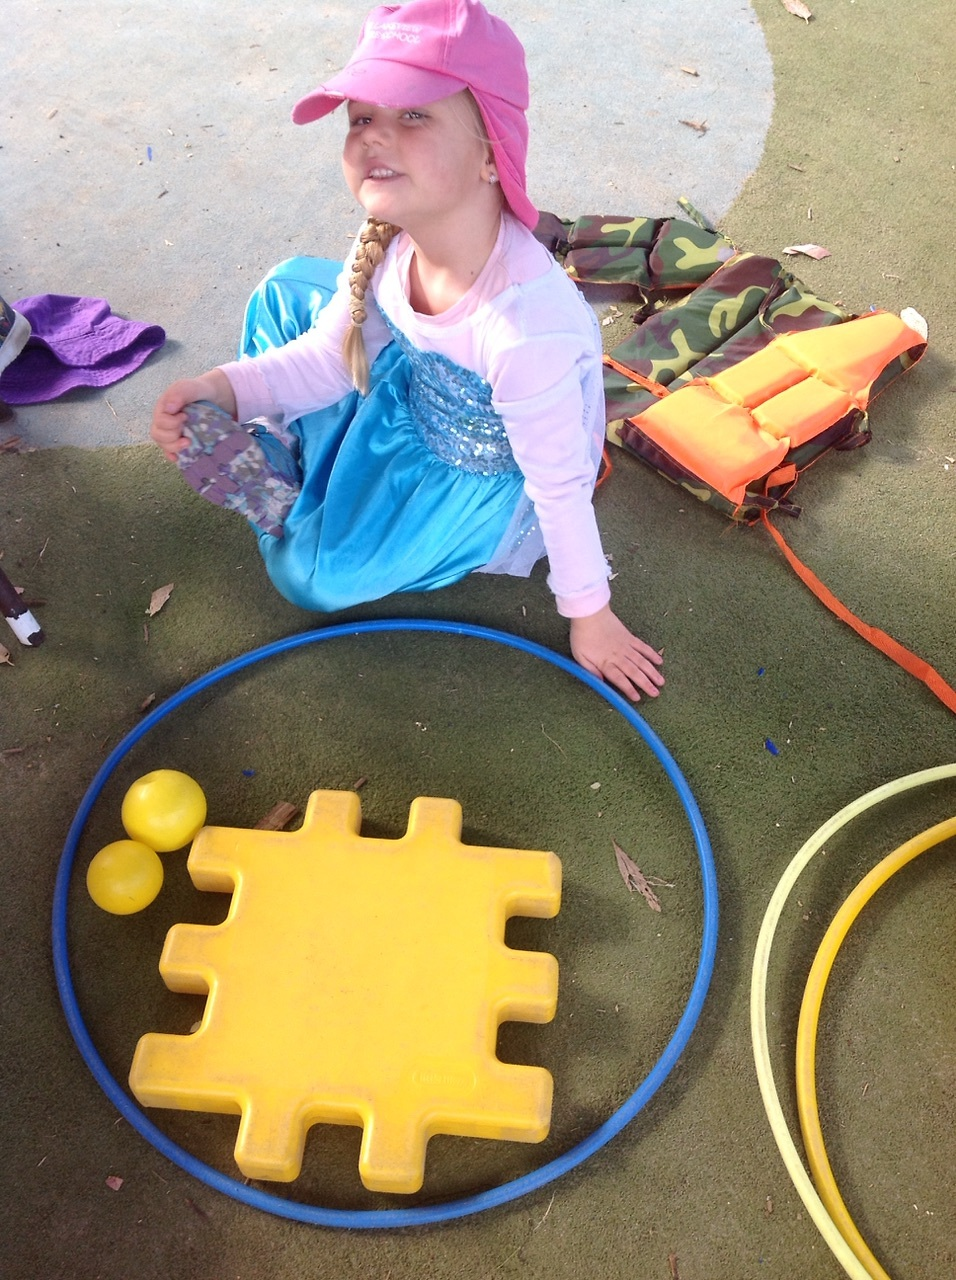 The children love creating with the loose parts, here is Ellise using the large loose parts outside to create.